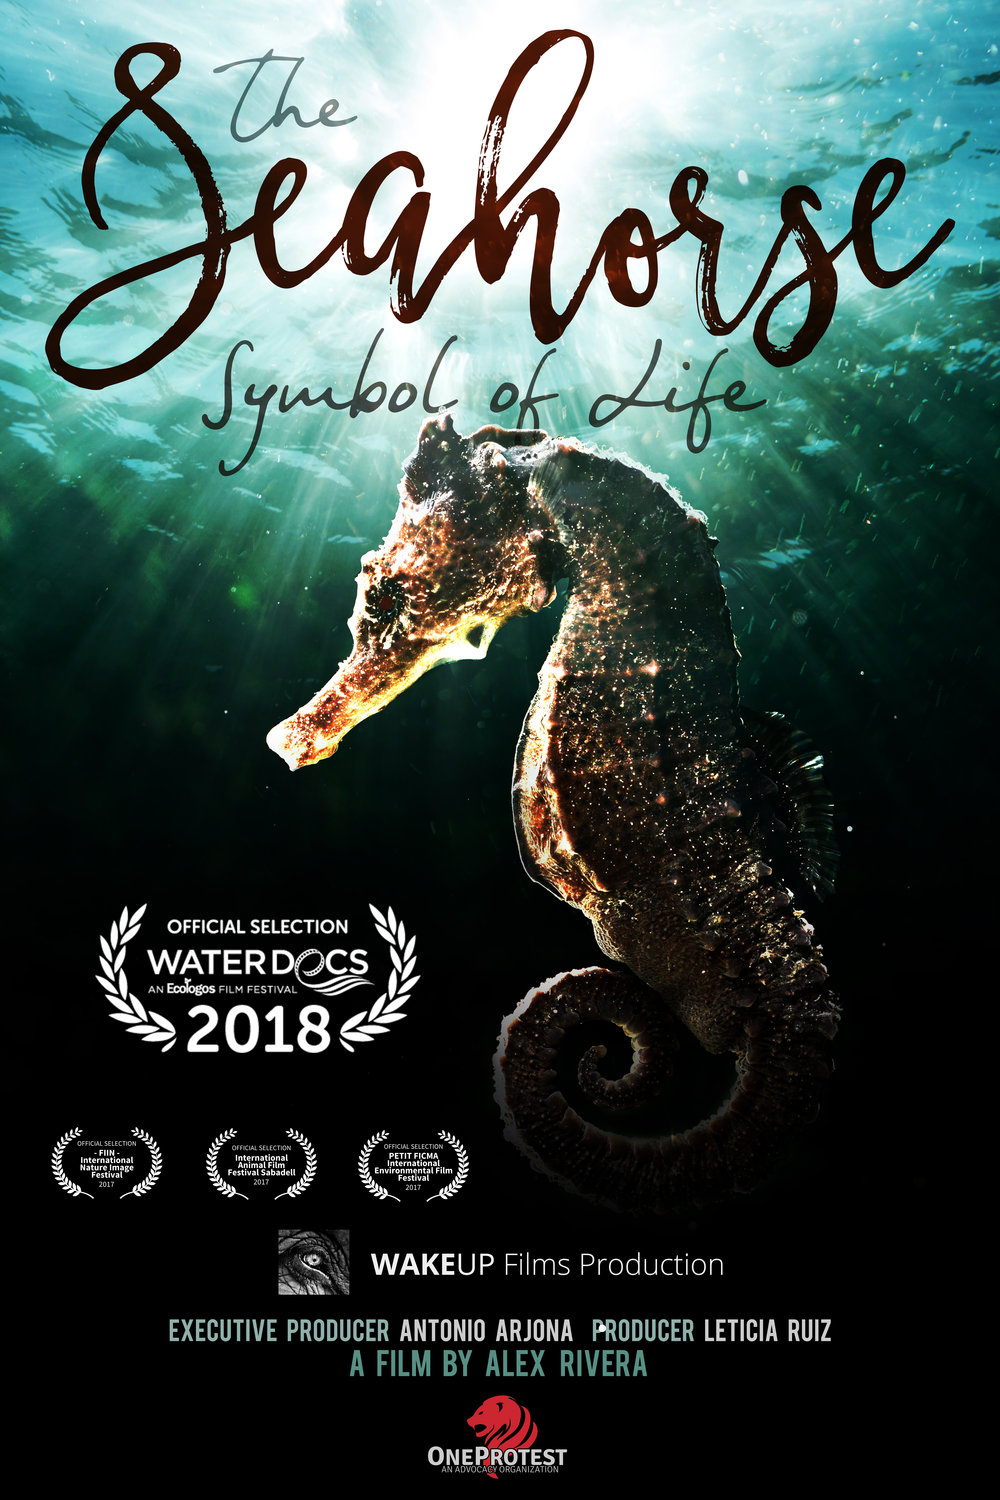 Poster-The Seahorse_Symbol of life_WaterDocs.jpg